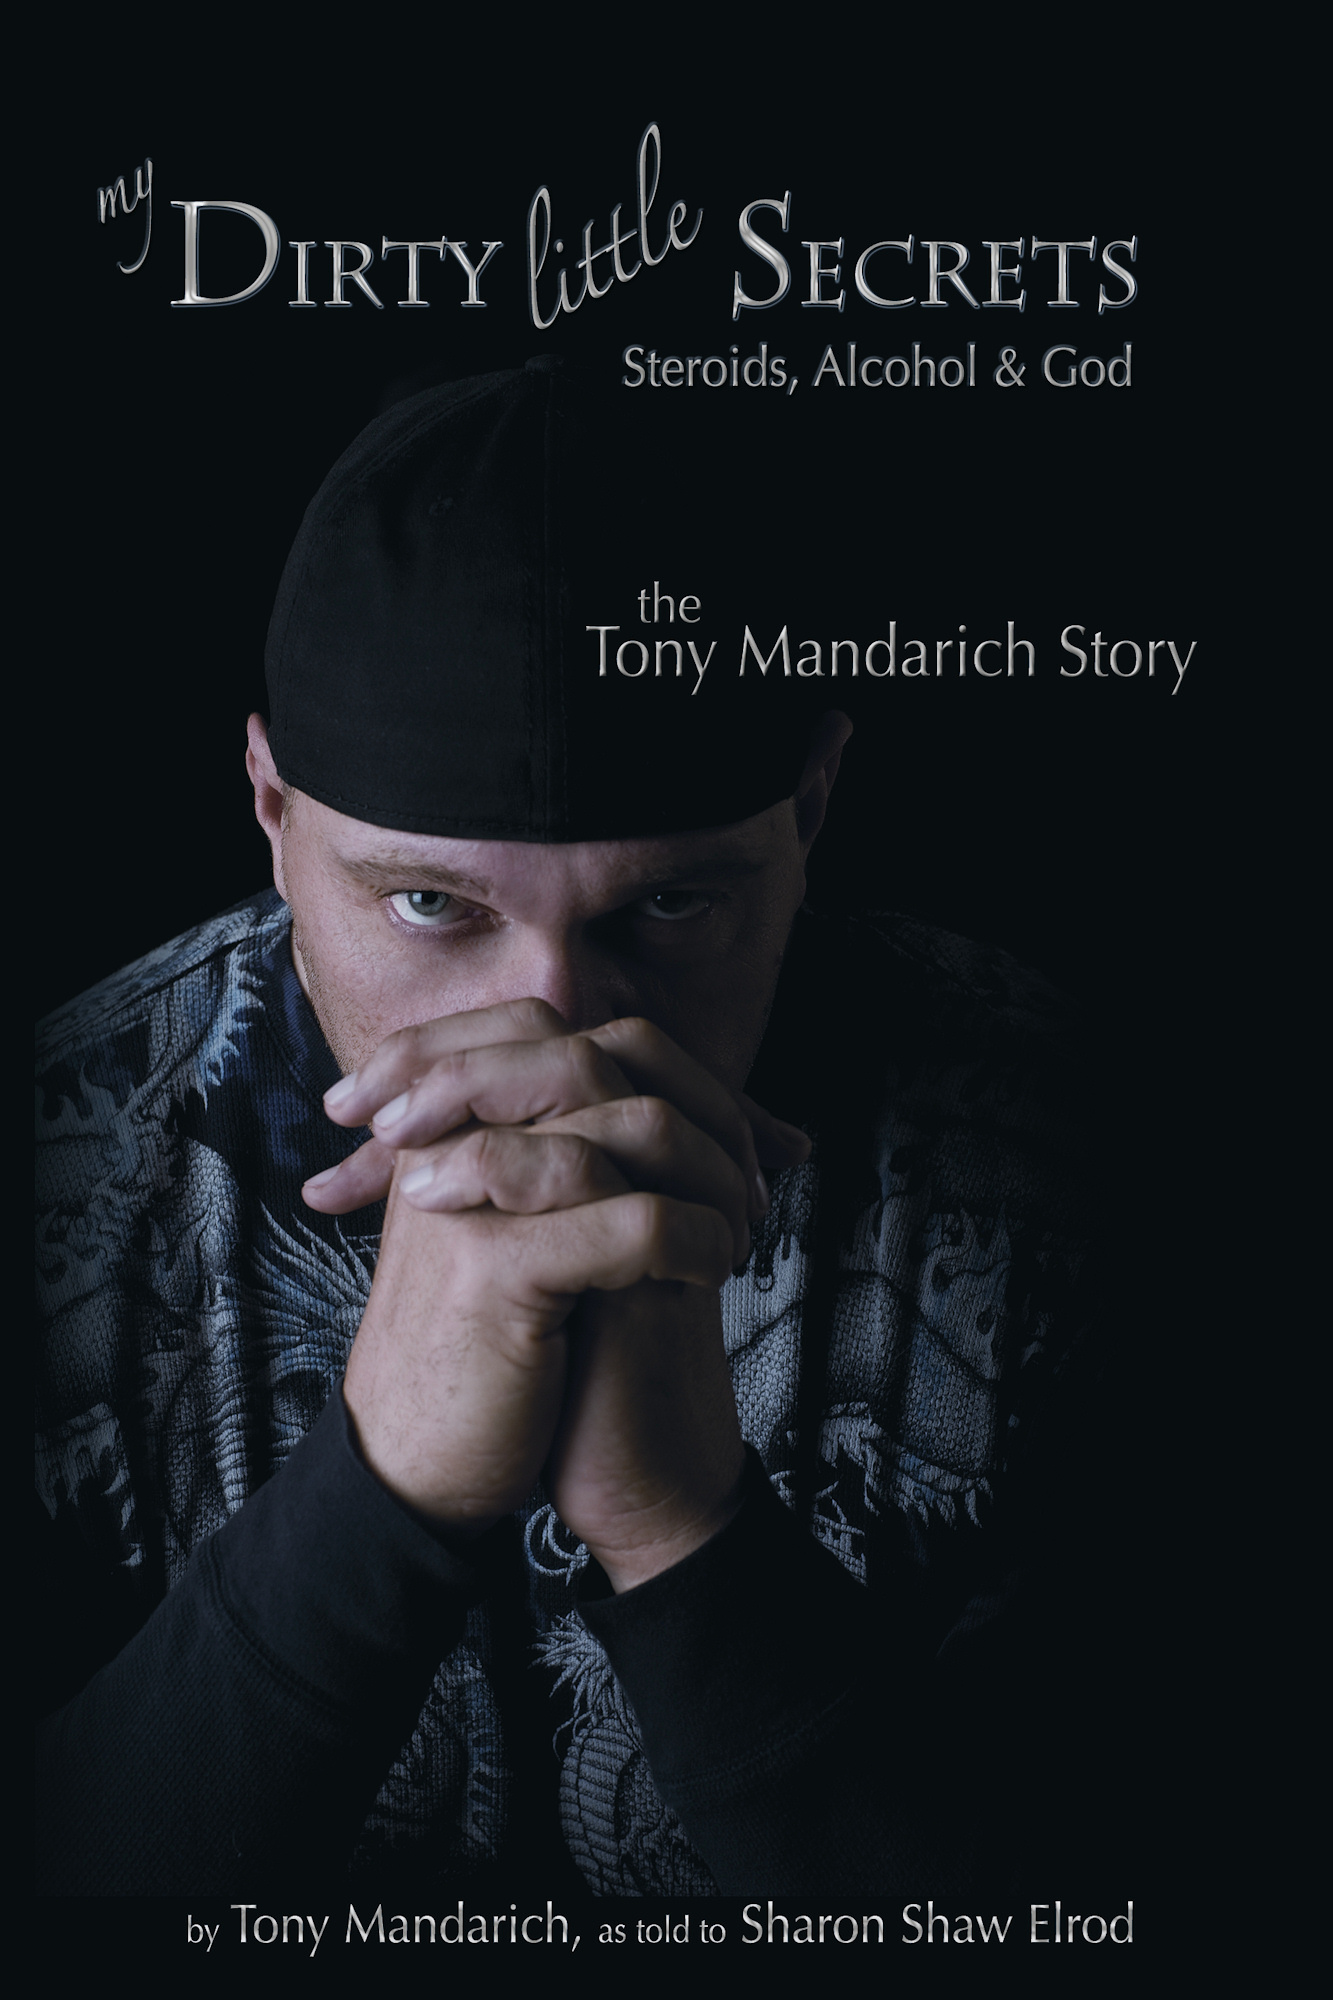 My Dirty Little Secrets - Steroids, Alcohol & Drugs: The Tony Mandarich Story